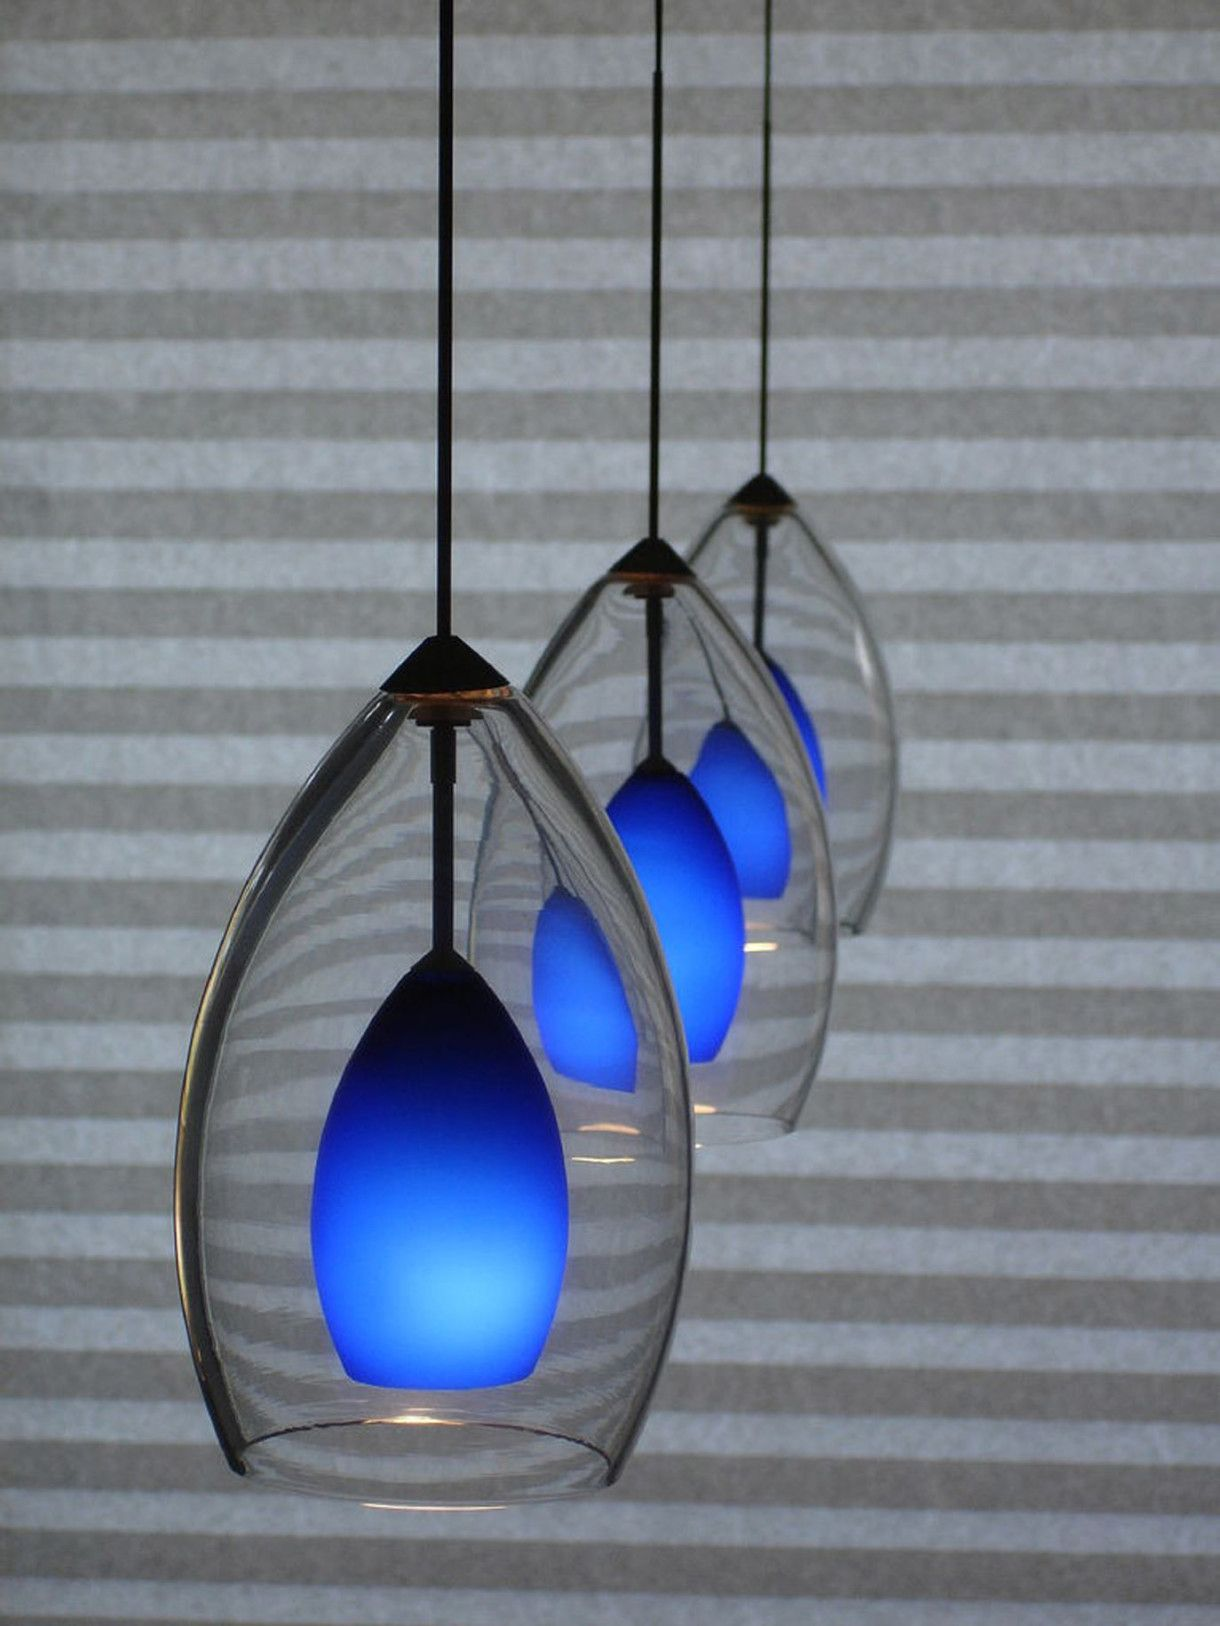 Elegant blue pendant lamp design idea by david hunter making